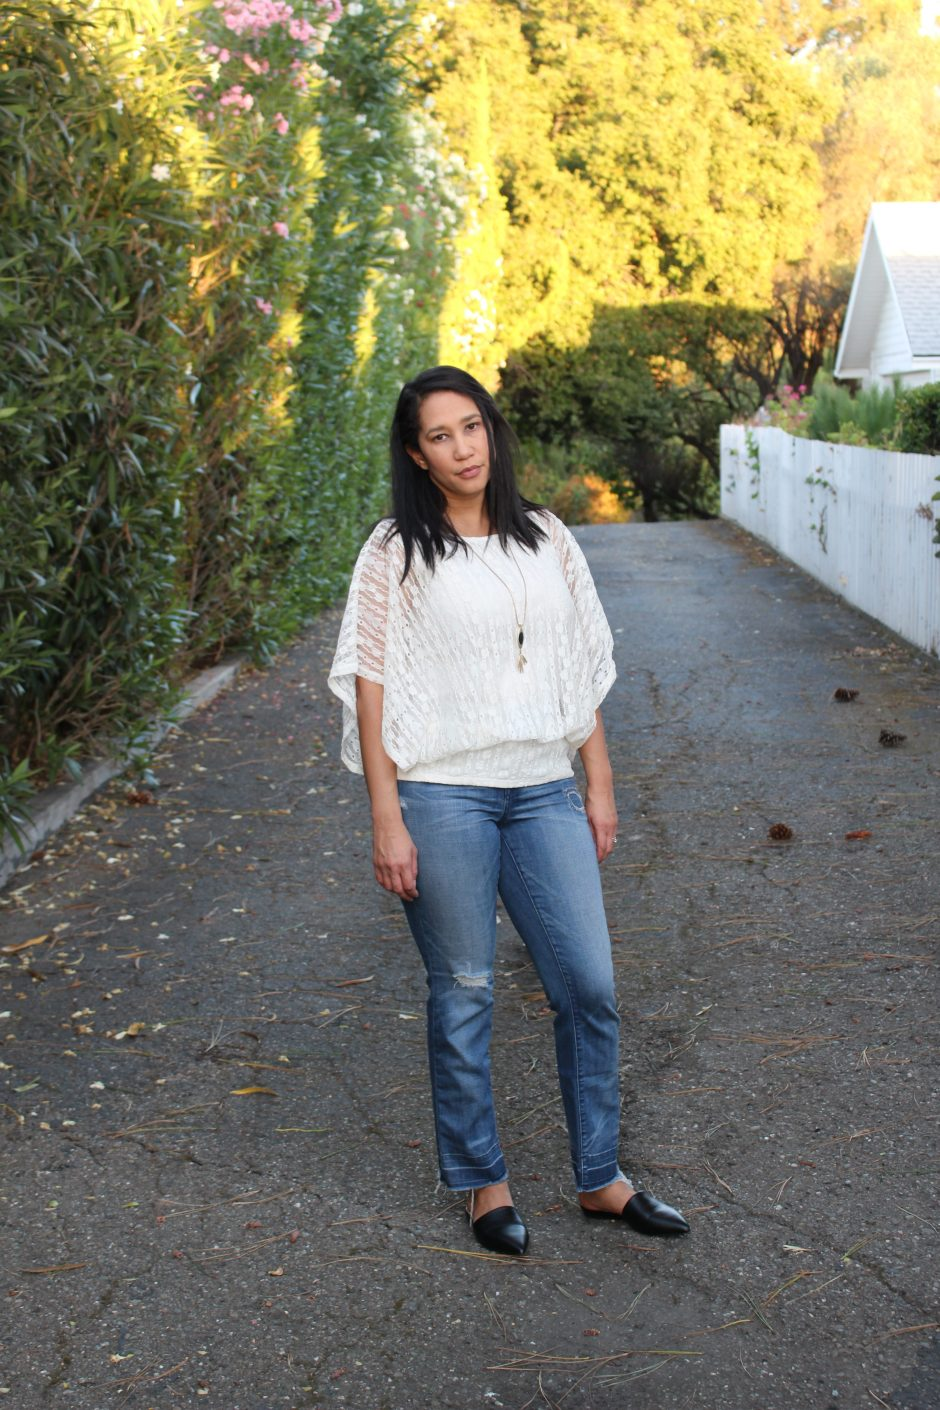 GUEST POST: A Week of Outfits with Shelbi of Urban Girl's Closet